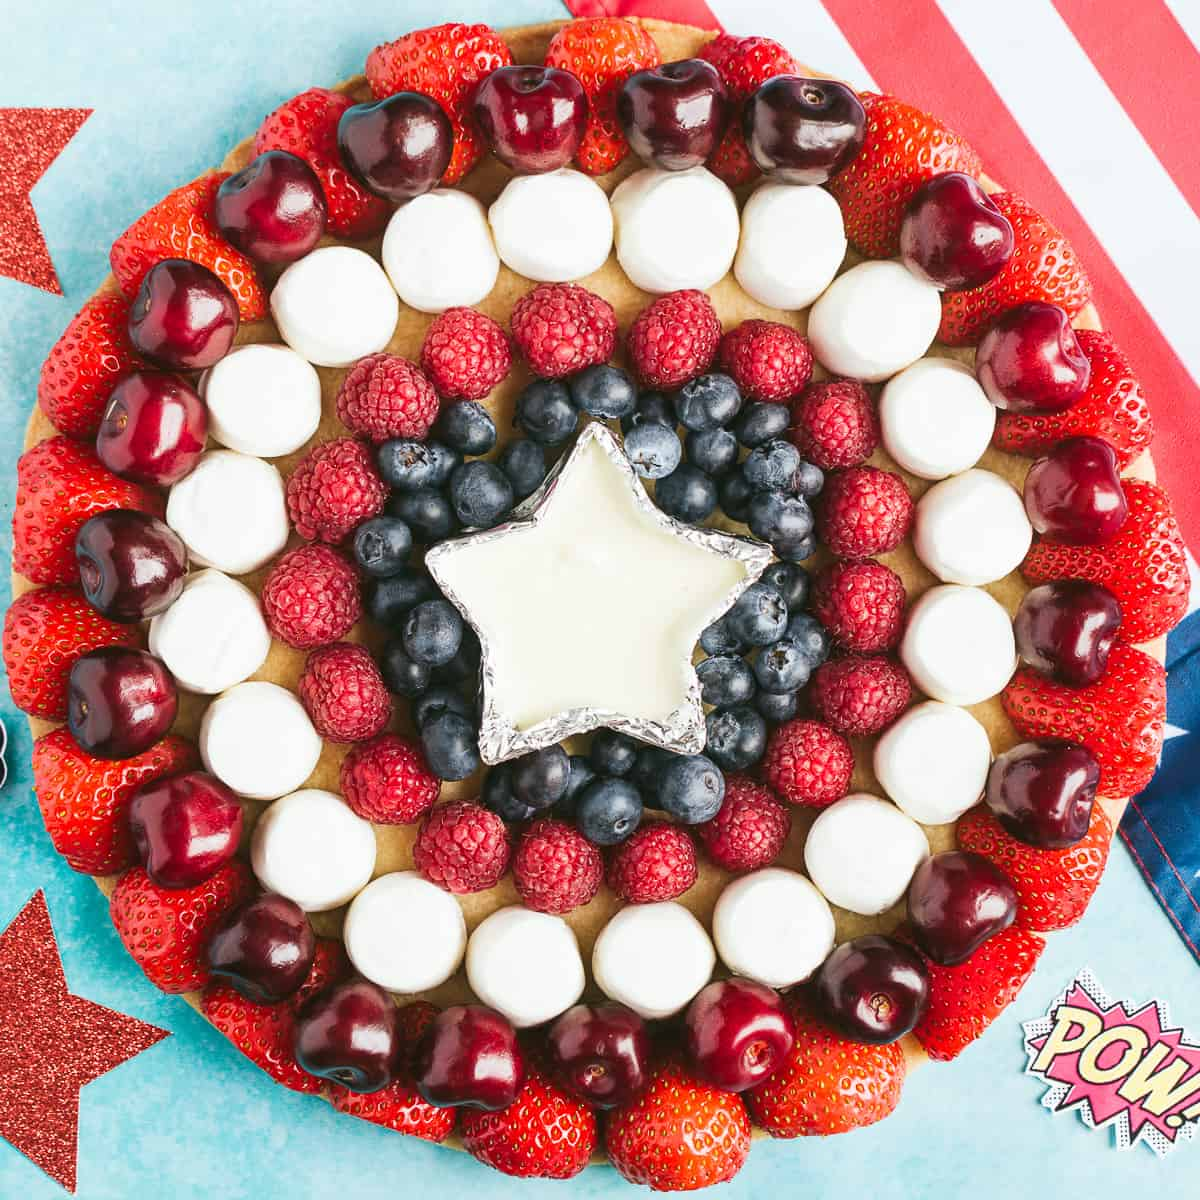 A fruit shield with the pattern of Captain America's shield.